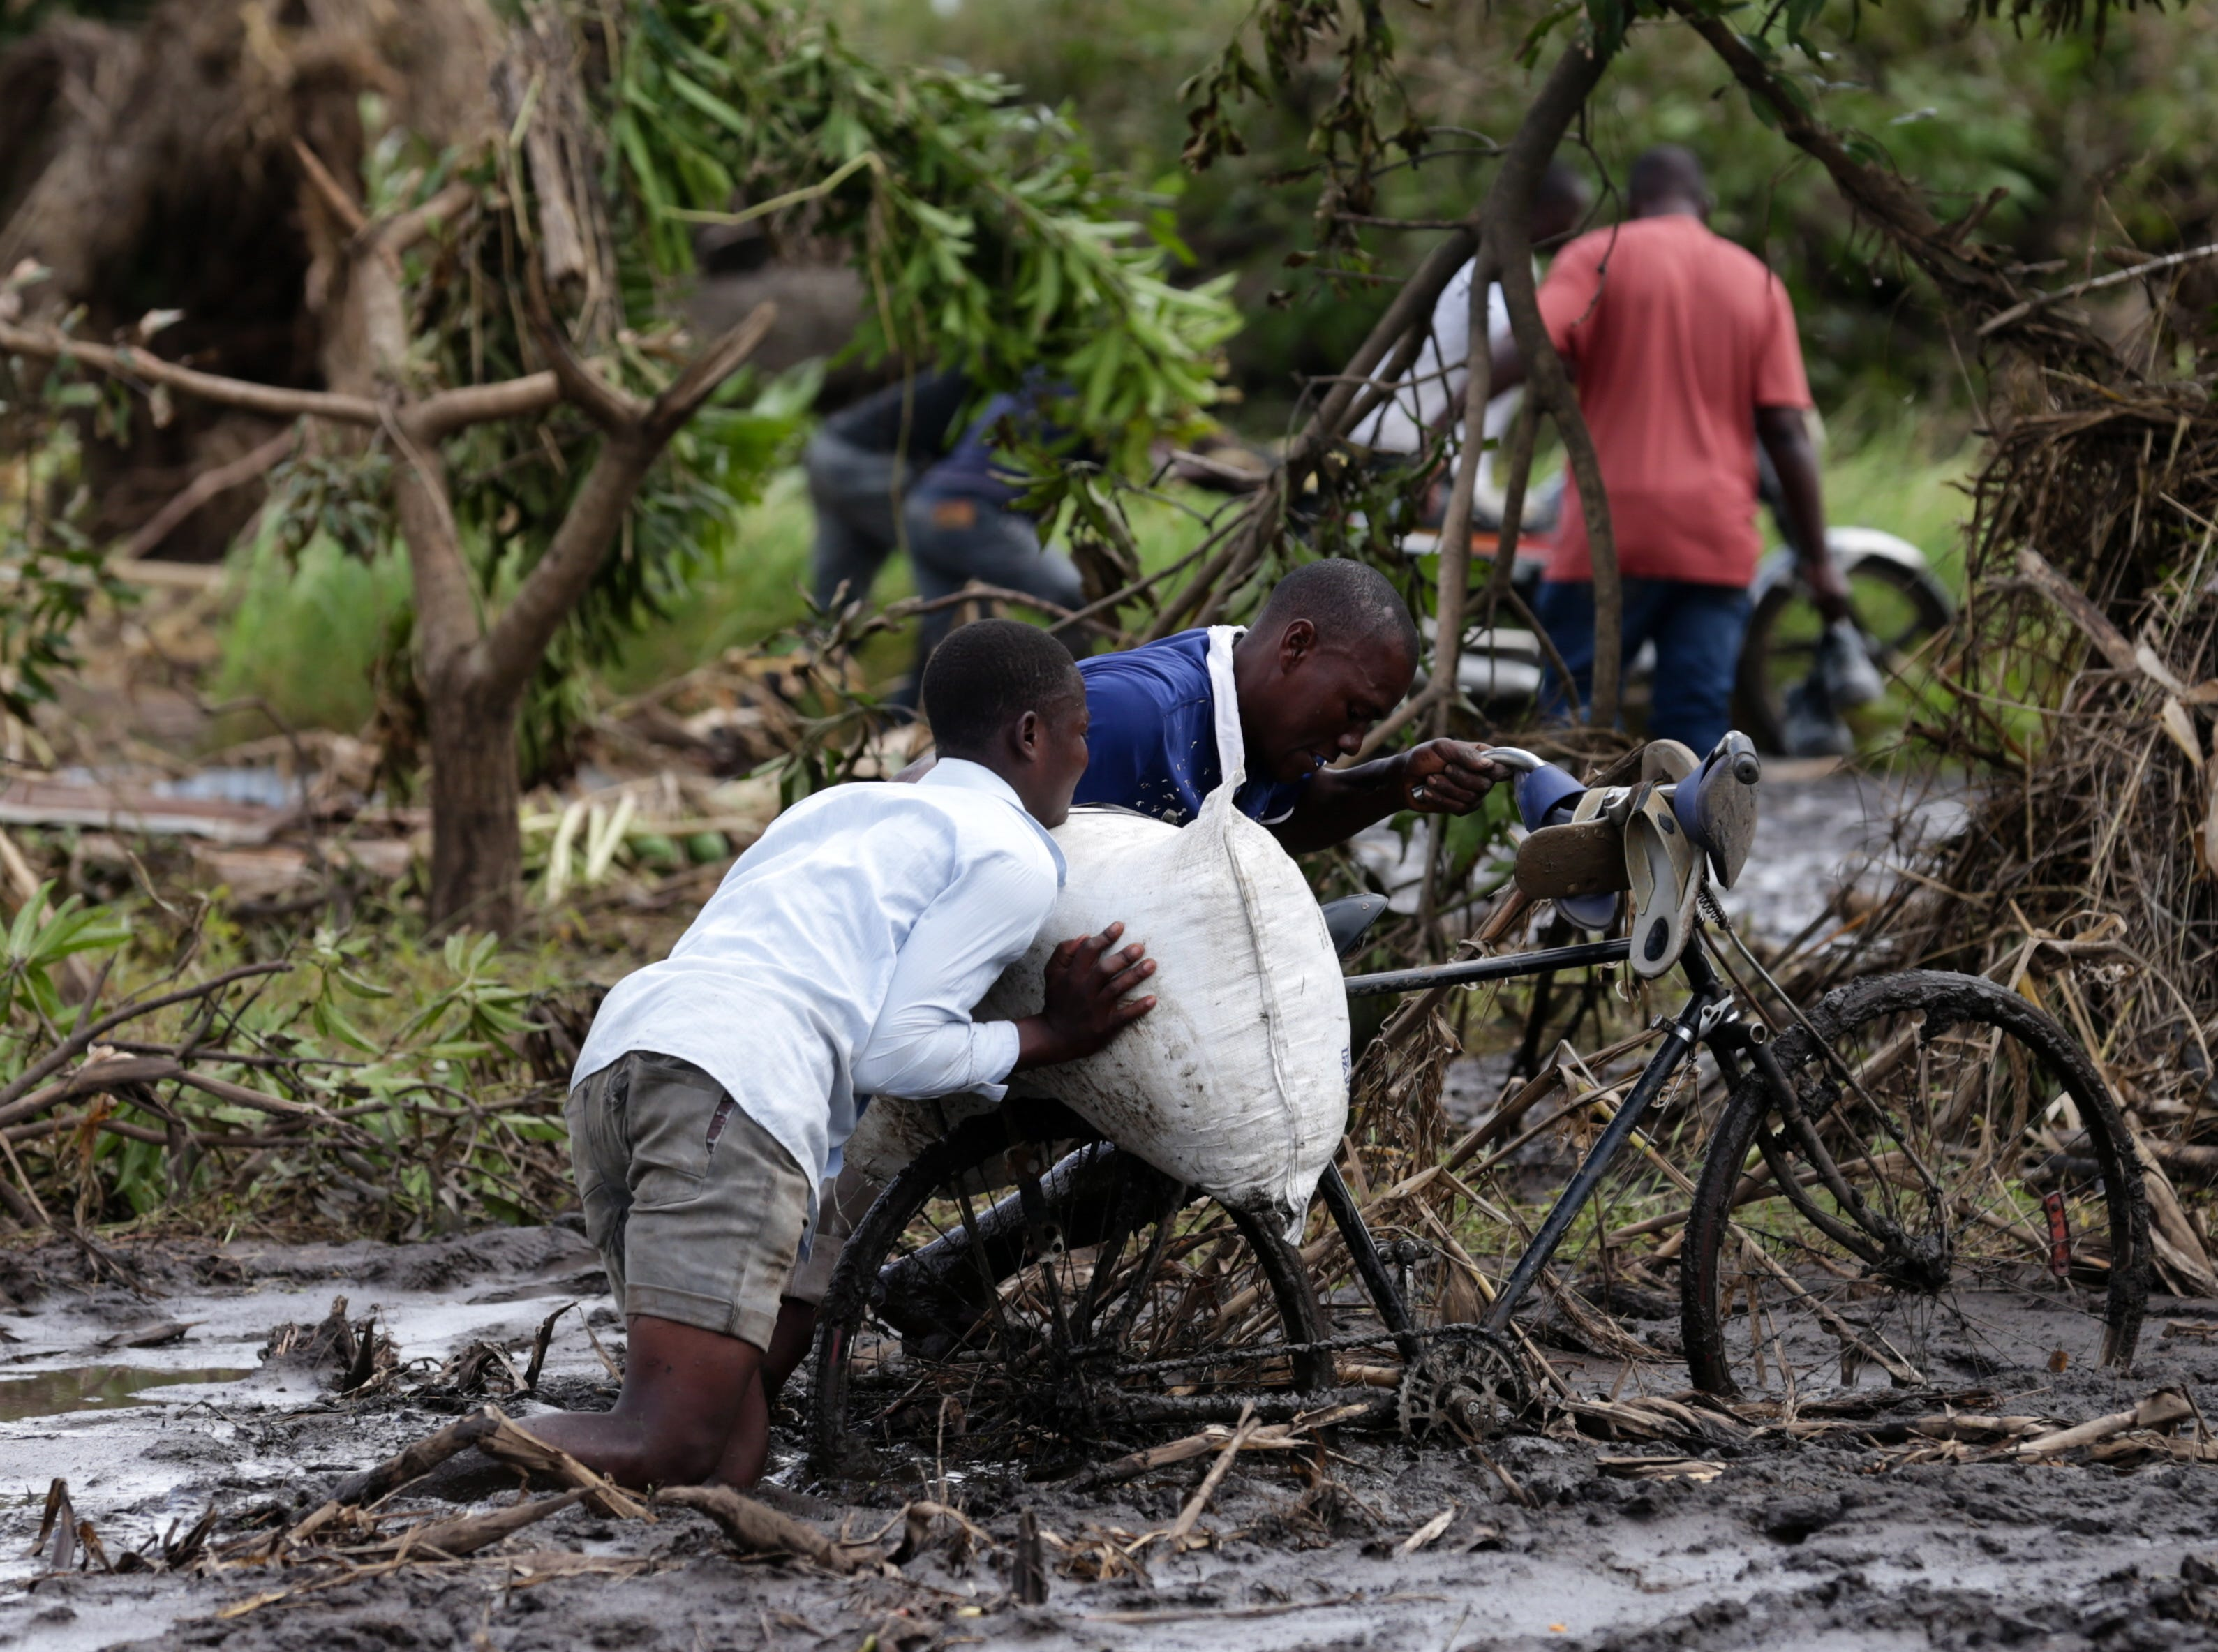 Two men push a bicycle through mud on the only access route possible in the area of Joao Segredo where the national road 6 was interrupted after the passage of cyclone Idai in the province of Sofala, central Mozambique on March 23, 2019.  The National Disasters Management Institute of Mozambique said 417 people lost their lives by Cyclone Idai, 301 of them died in the central province of Sofala, where 123 people died in the badly hit regional capital Beira.